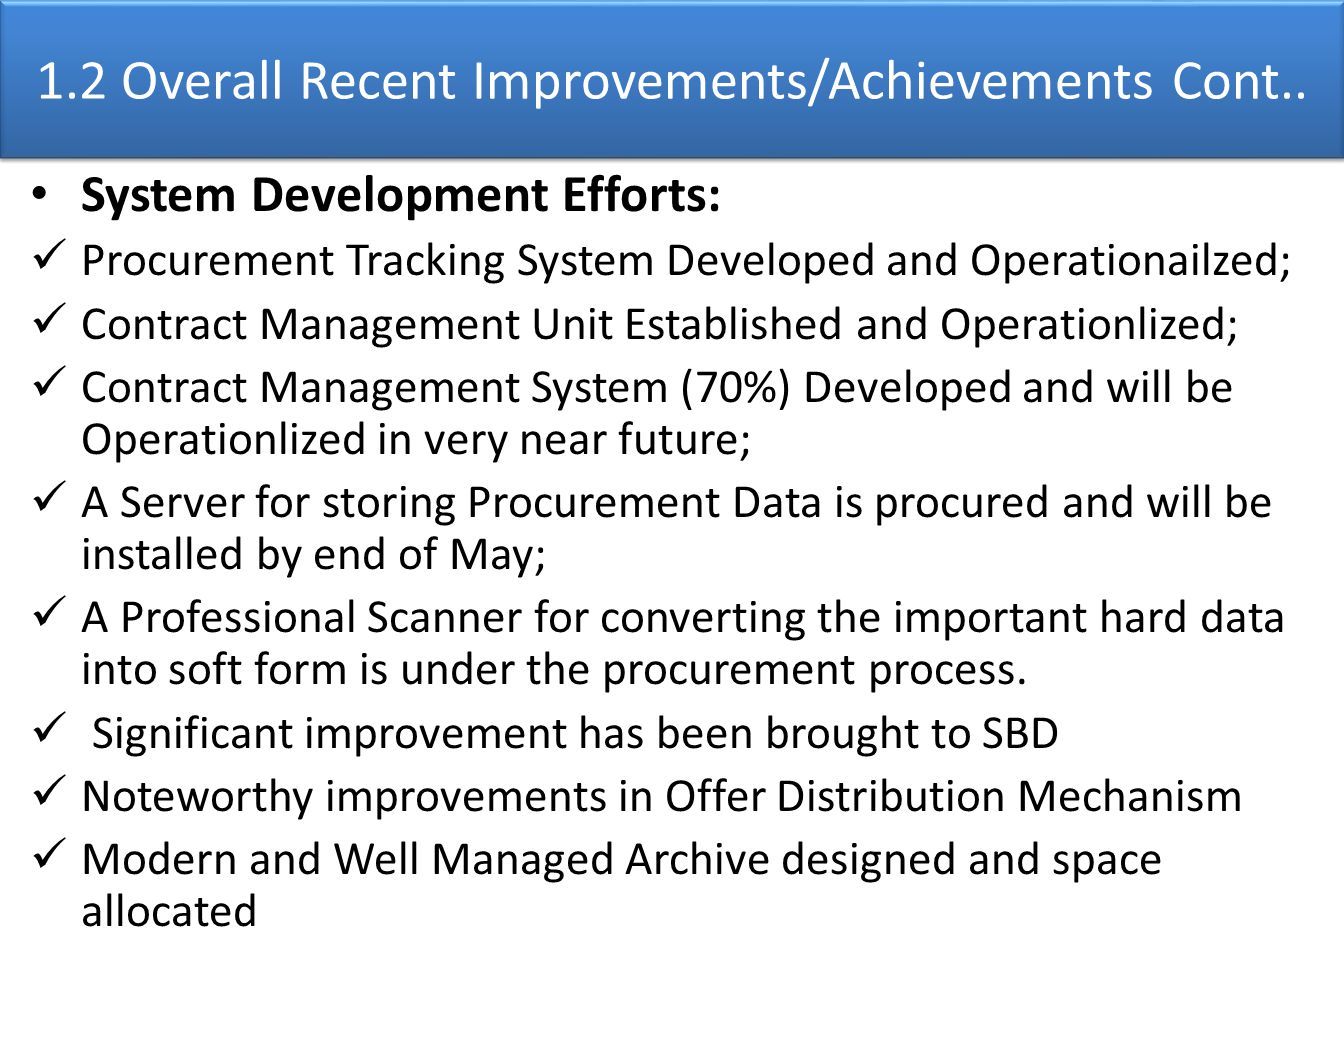 System Development Efforts: Procurement Tracking System Developed and Operationailzed; Contract Management Unit Established and Operationlized; Contra